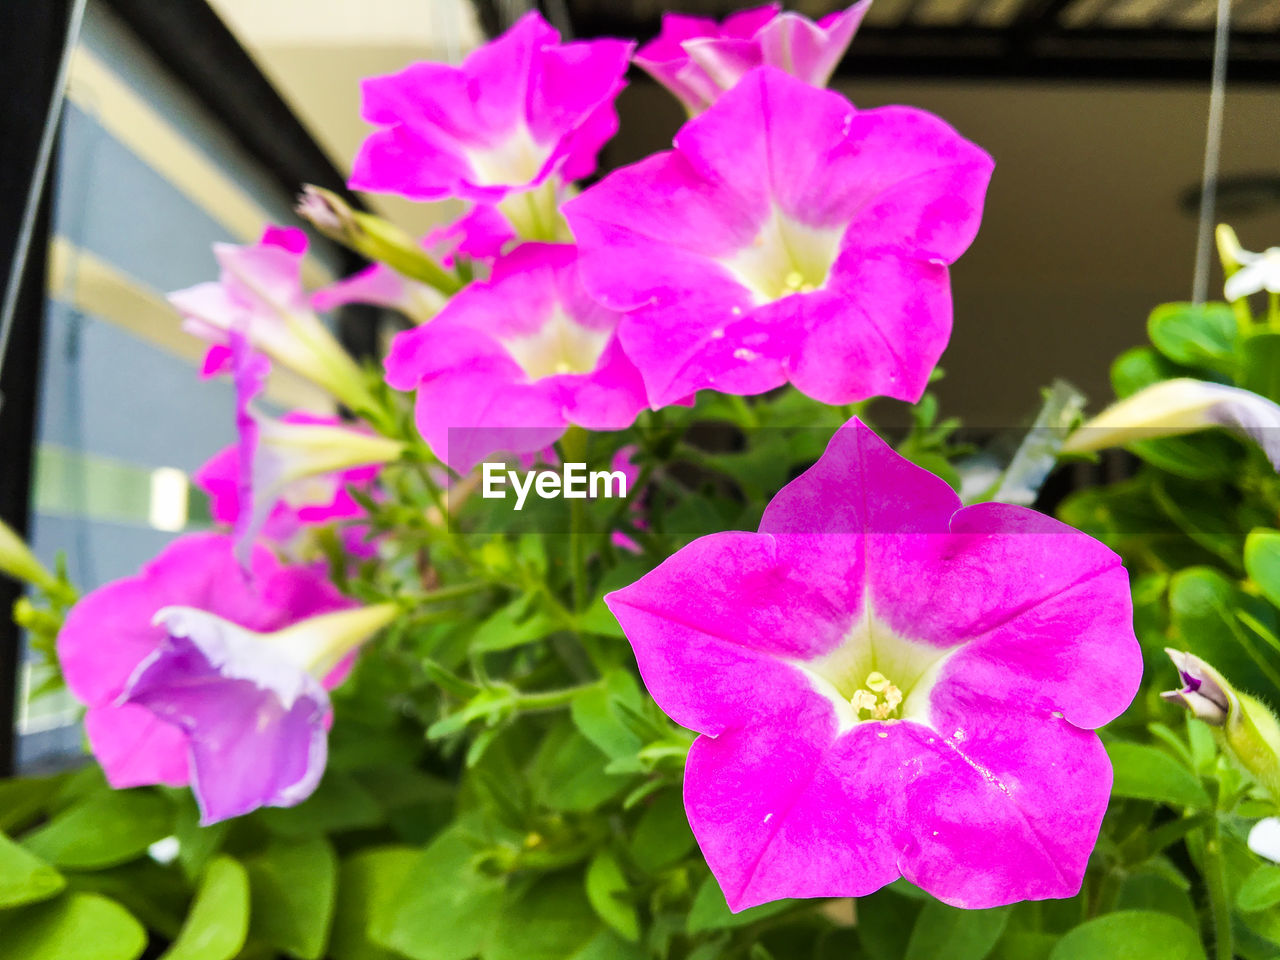 flower, growth, petal, fragility, beauty in nature, flower head, freshness, pink color, nature, plant, no people, blooming, day, outdoors, close-up, focus on foreground, petunia, periwinkle